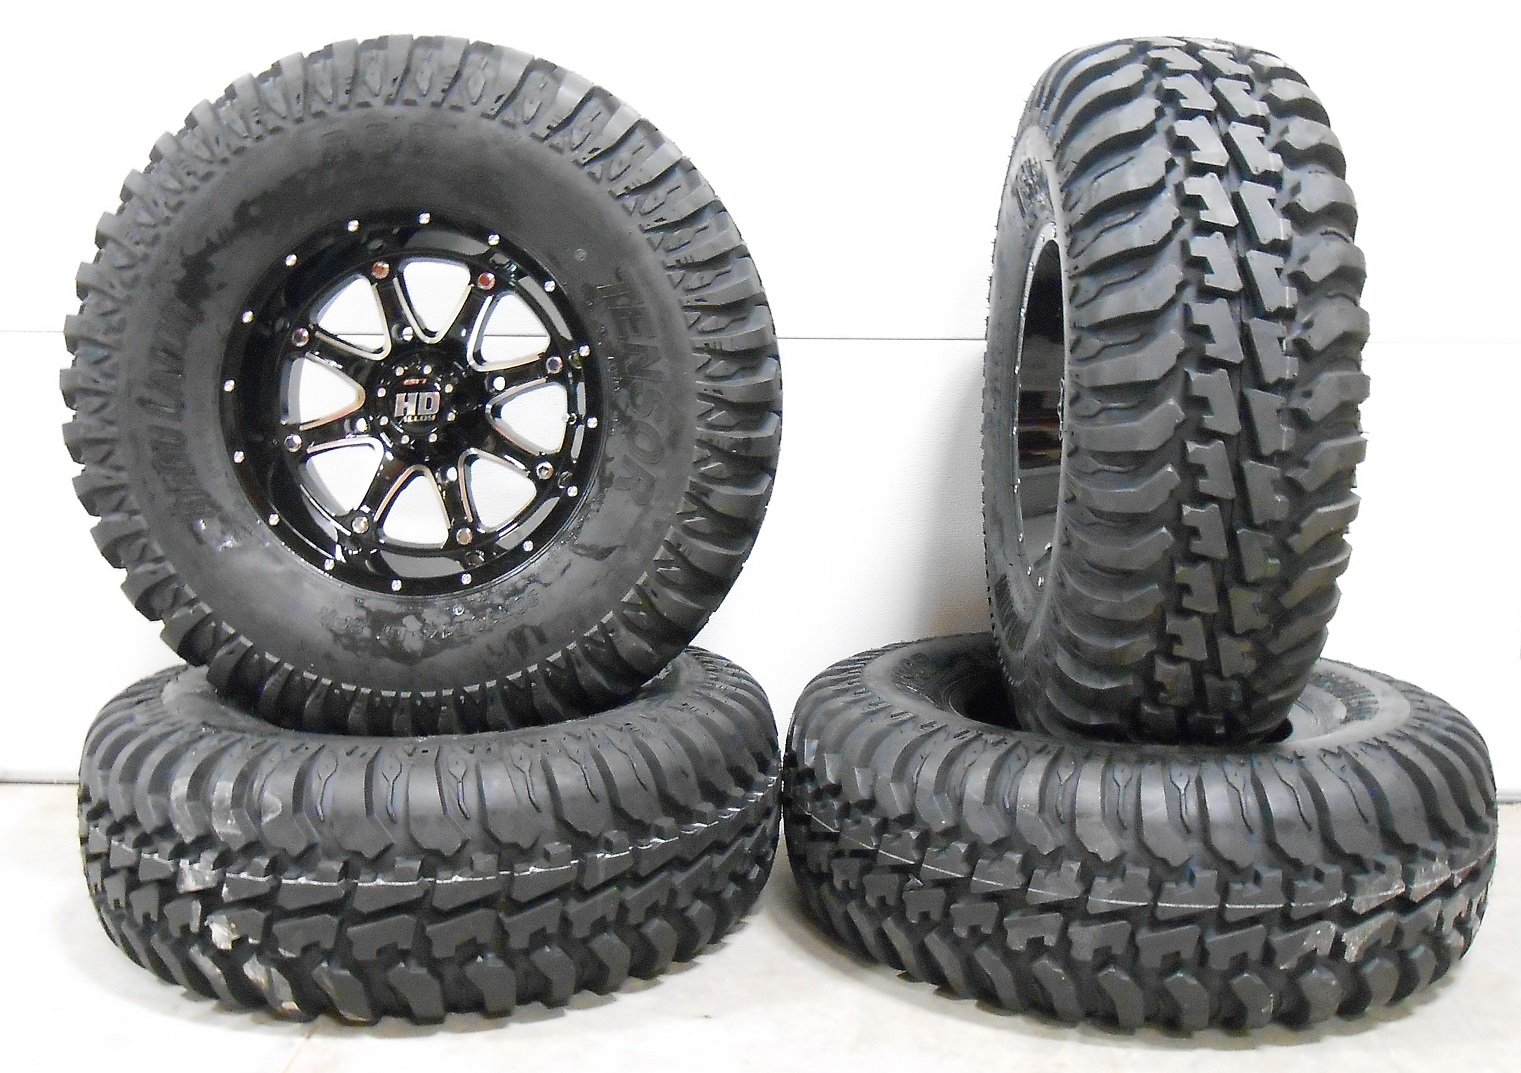 Bundle - 9 Items: STI HD4 14'' Wheels Black 30'' Regulator Tires [4x156 Bolt Pattern 12mmx1.5 Lug Kit]